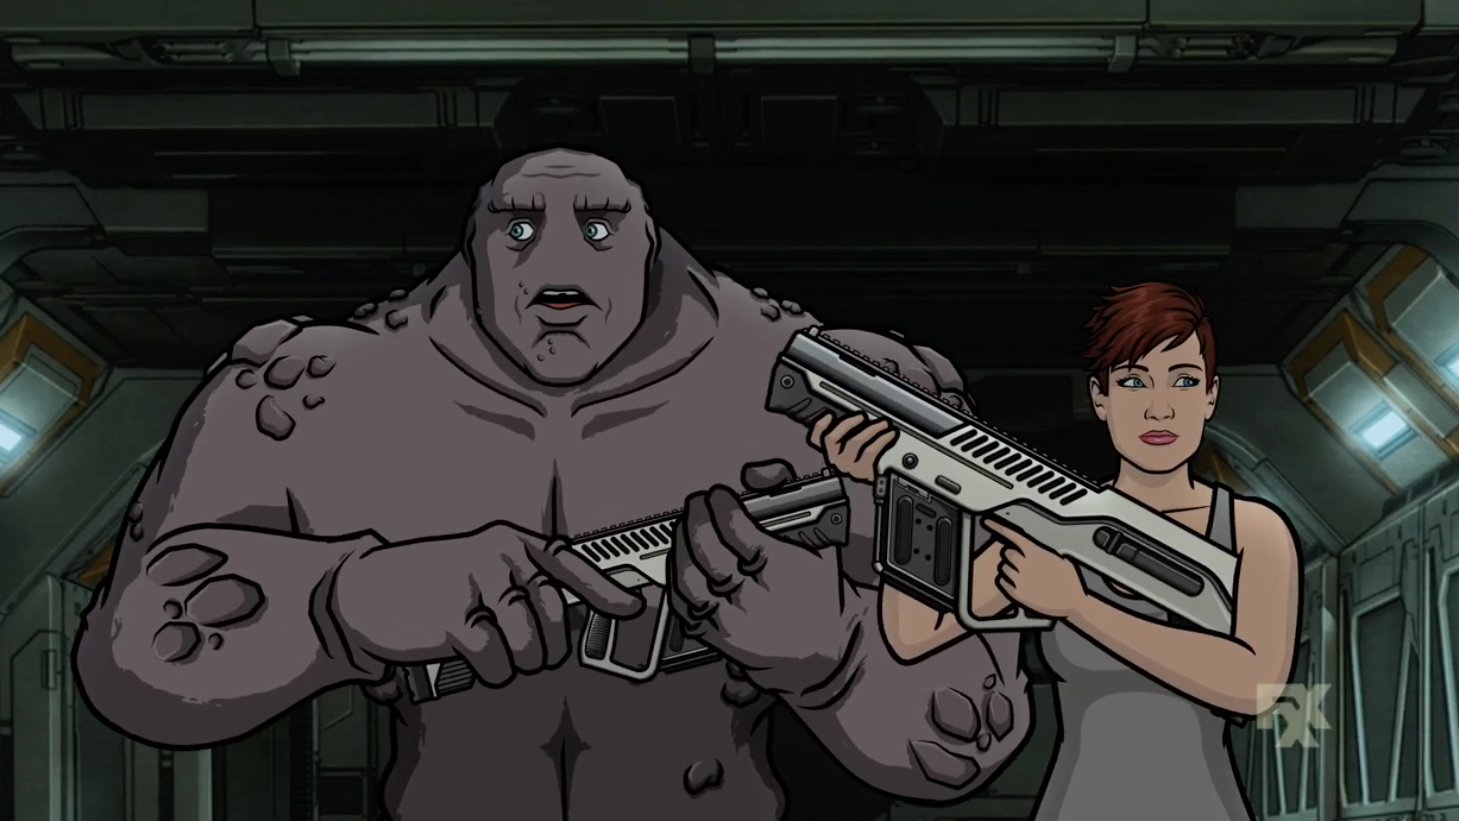 Archer: 1999 Shows Off Its 'Late '70s, Early '80s Sci-Fi Vibe' In This New Behind-the-Scenes Peek